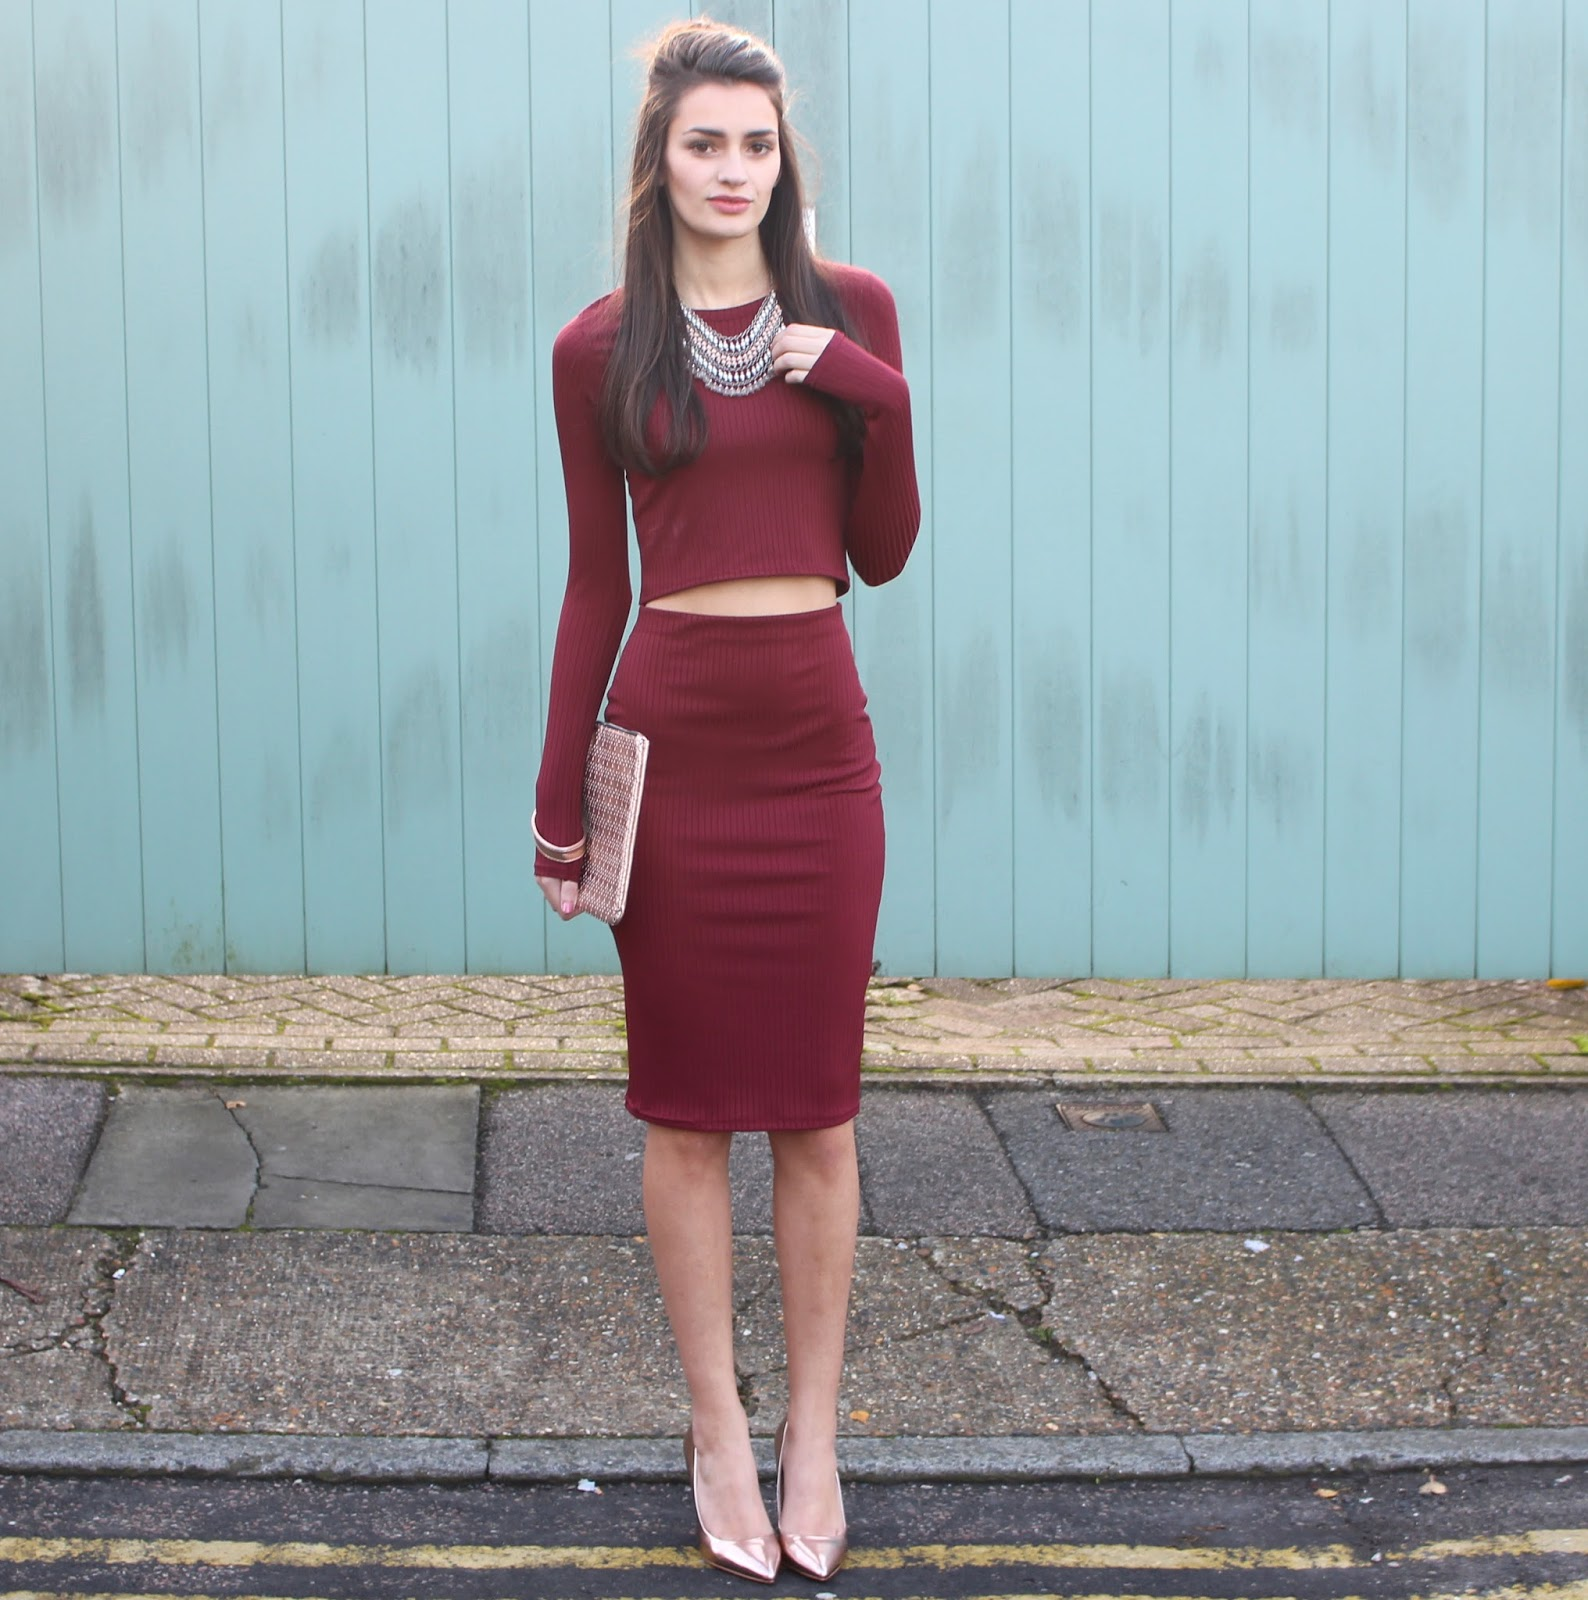 Christmas Party Outfit Ideas 2014 Part - 47: Tuesday, 2 December 2014